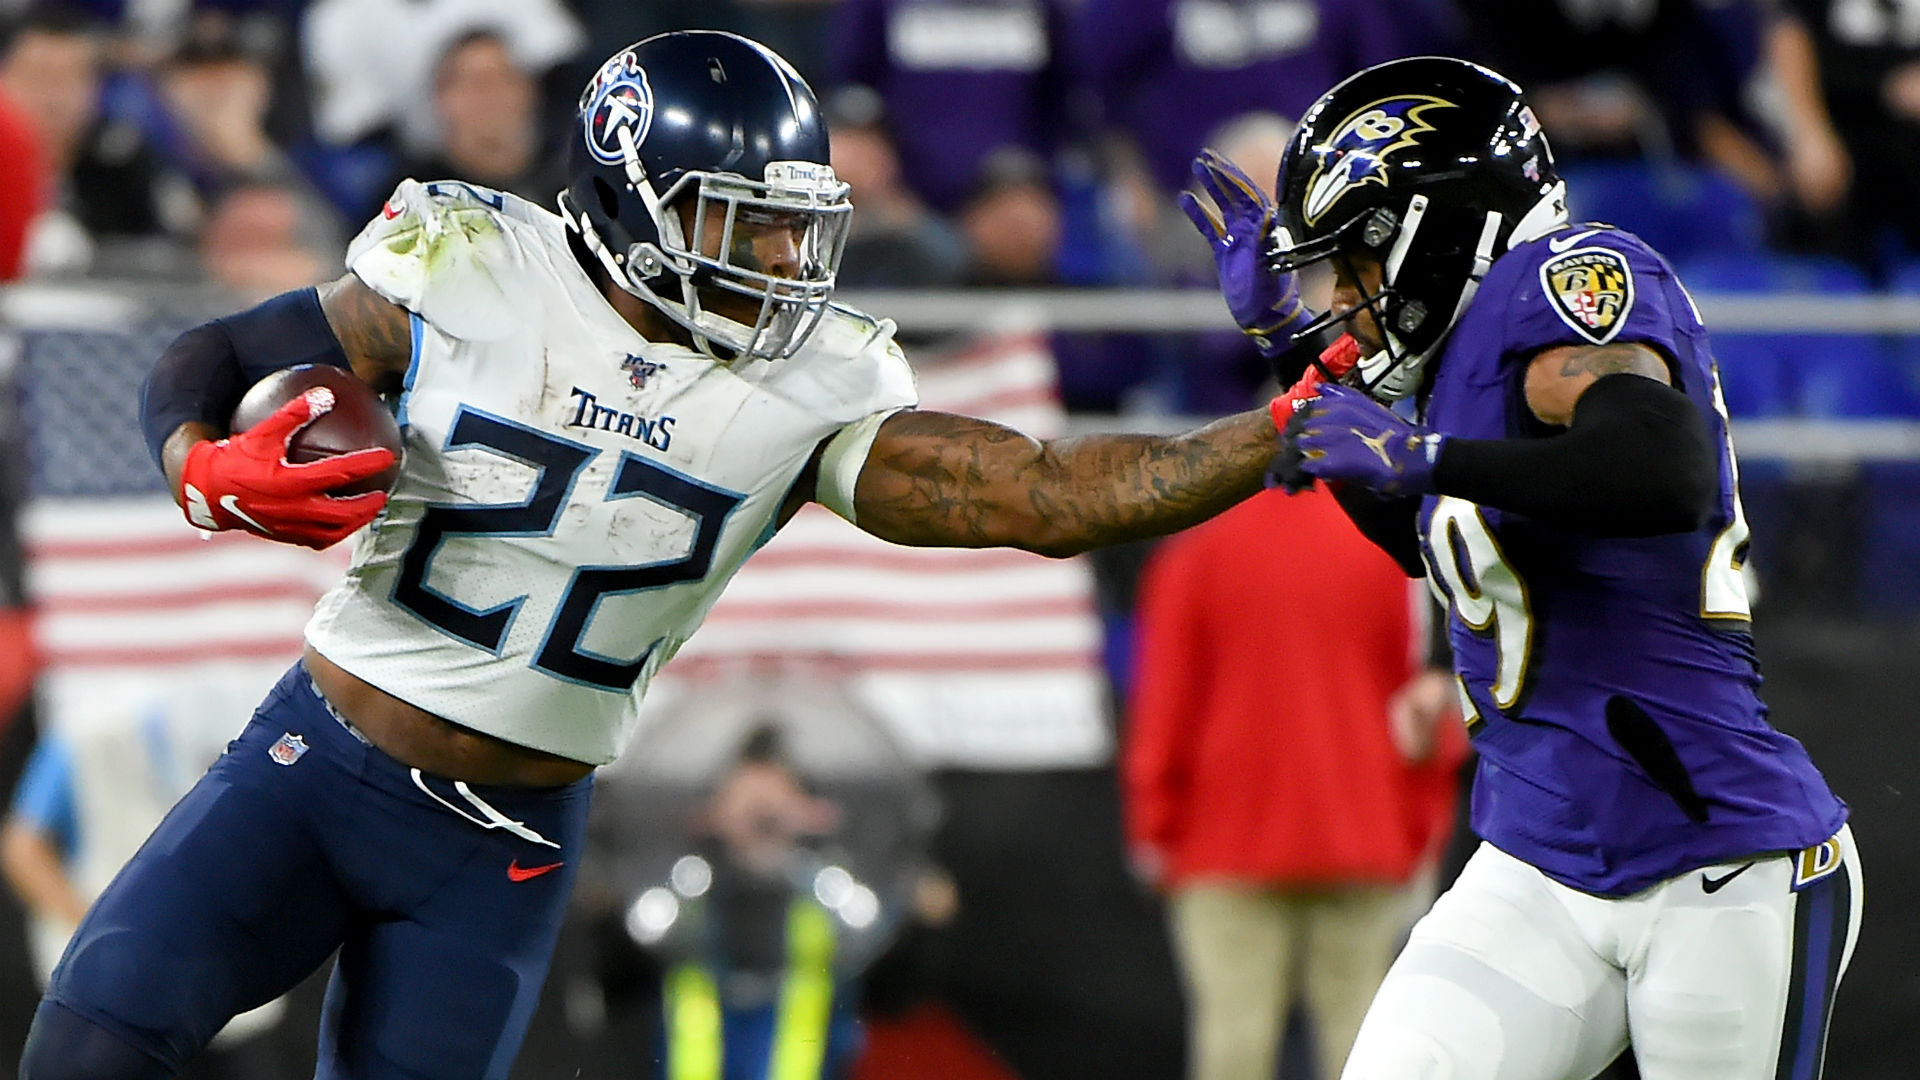 Titans' upset of Ravens in divisional playoffs could have been predicted based on an obscure NFL stat